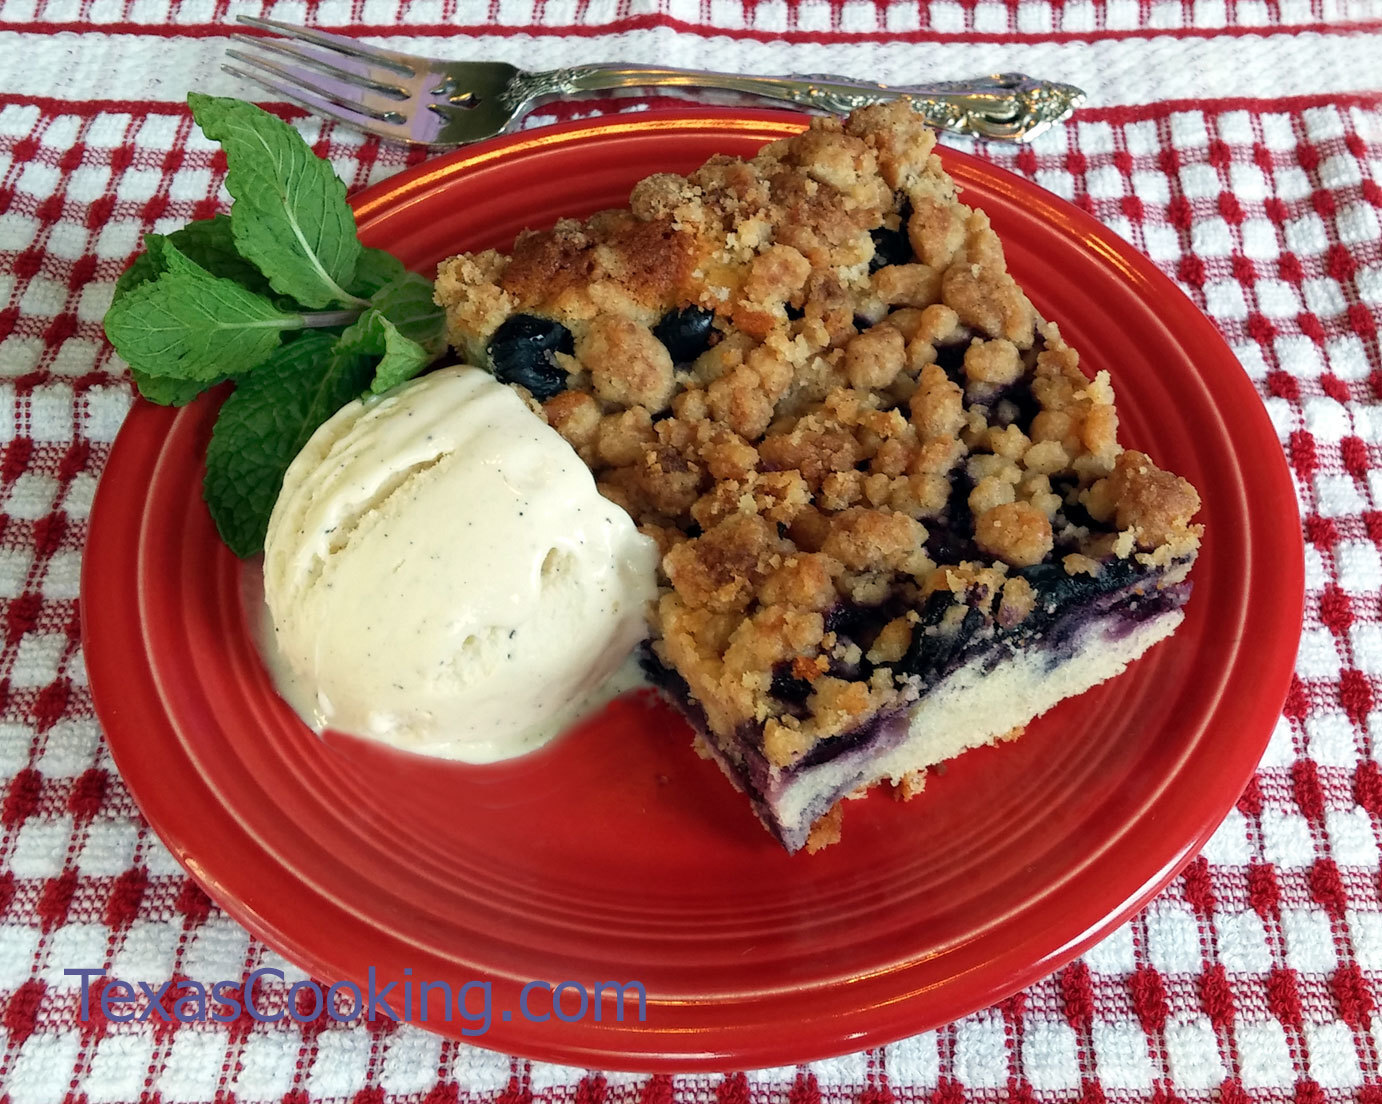 Blueberry crumbcake